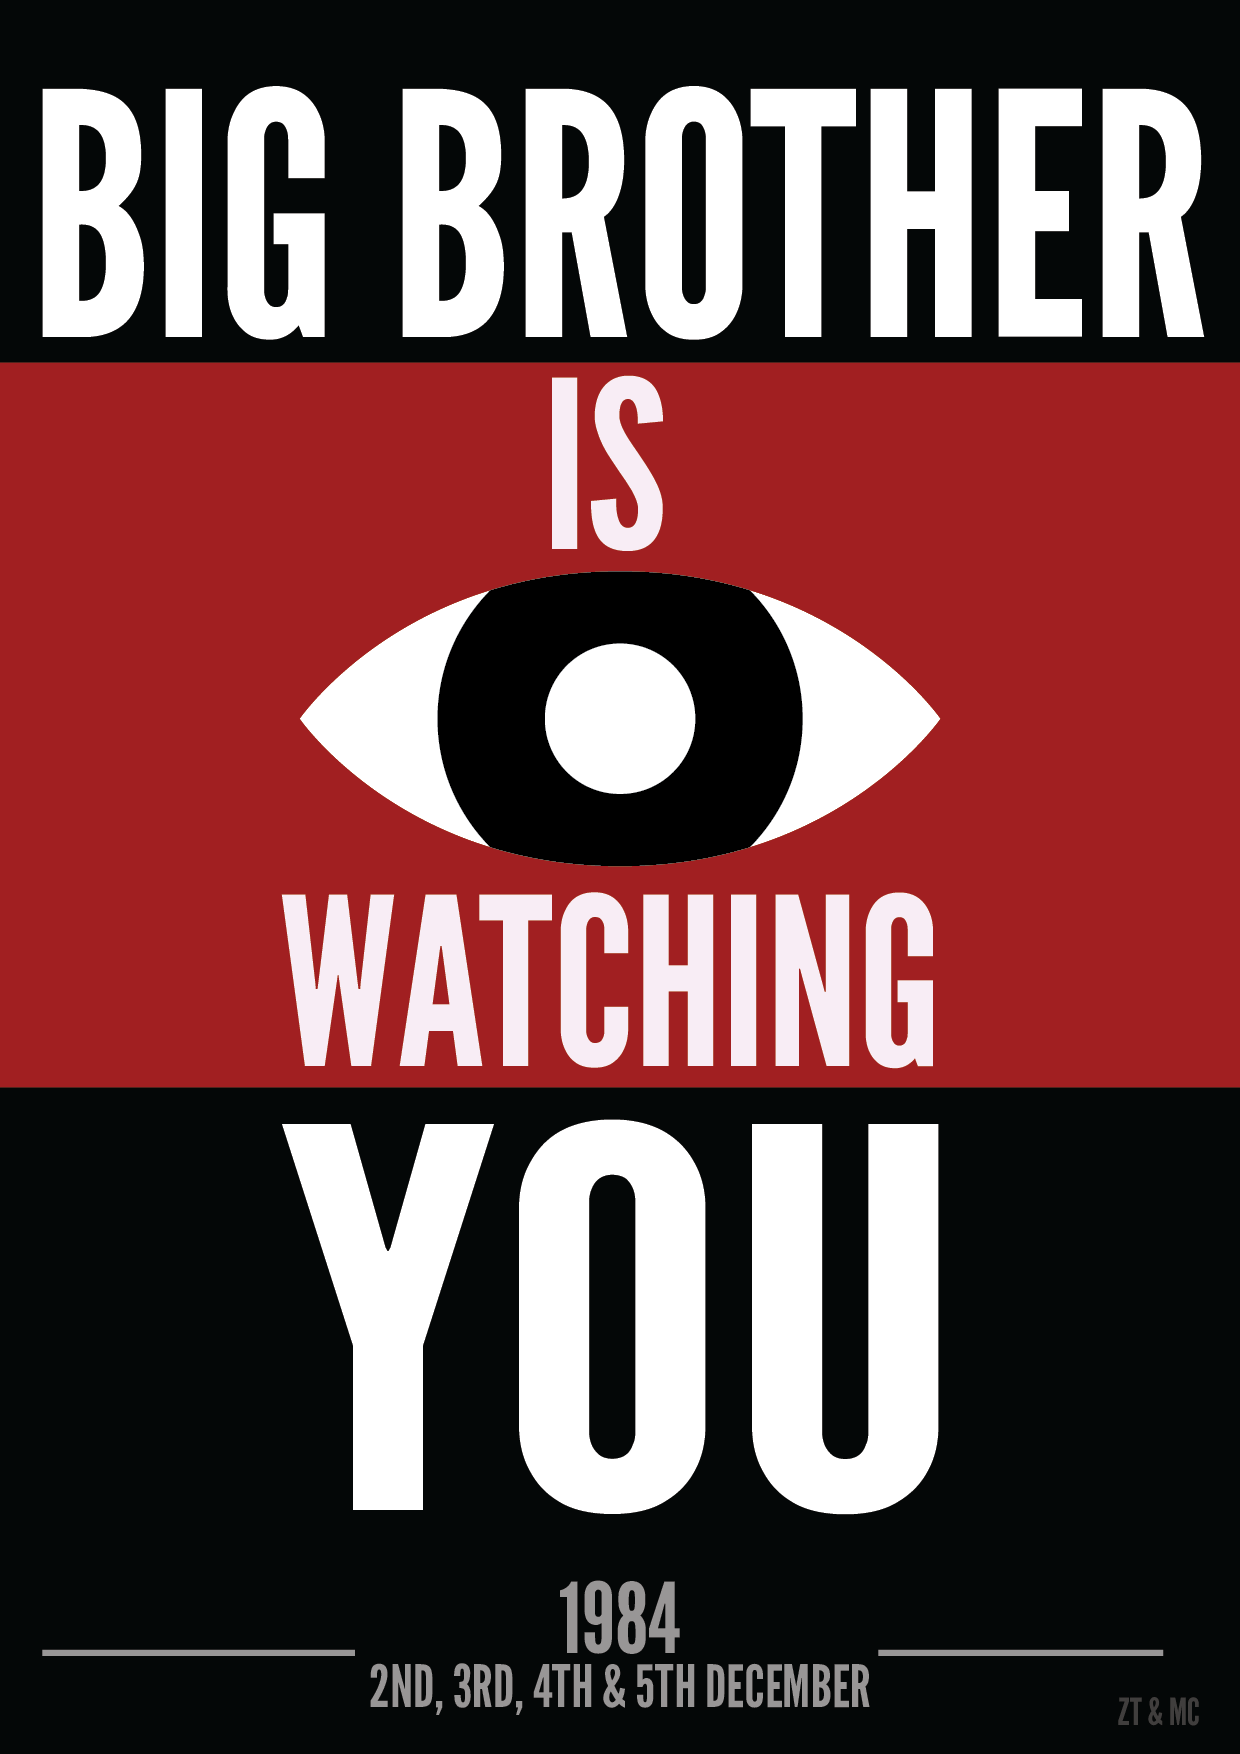 Quotes about Big brother watching you (53 quotes)